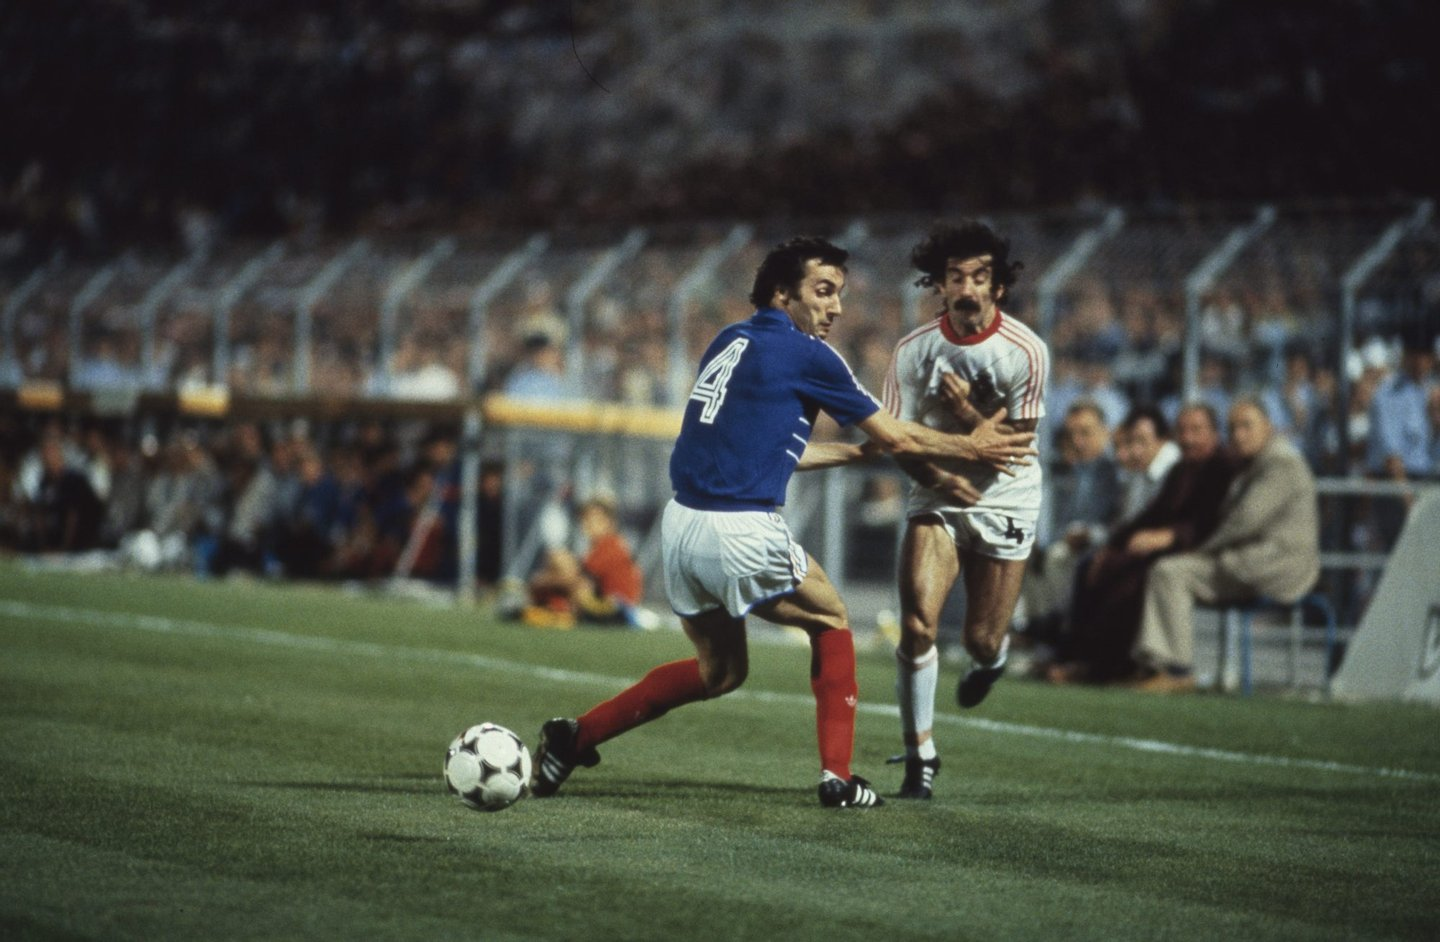 MARSEILLE, FRANCE - JUNE 23: Max Bossis (L) of France challenges Chalana of Portugal during the UEFA European Championships 1984 Semi-Final match between France and Portugal held on June 23, 1984 at the Stade Velodrome in Marseille, France. (Photo by STAFF/AFP/Getty Images)